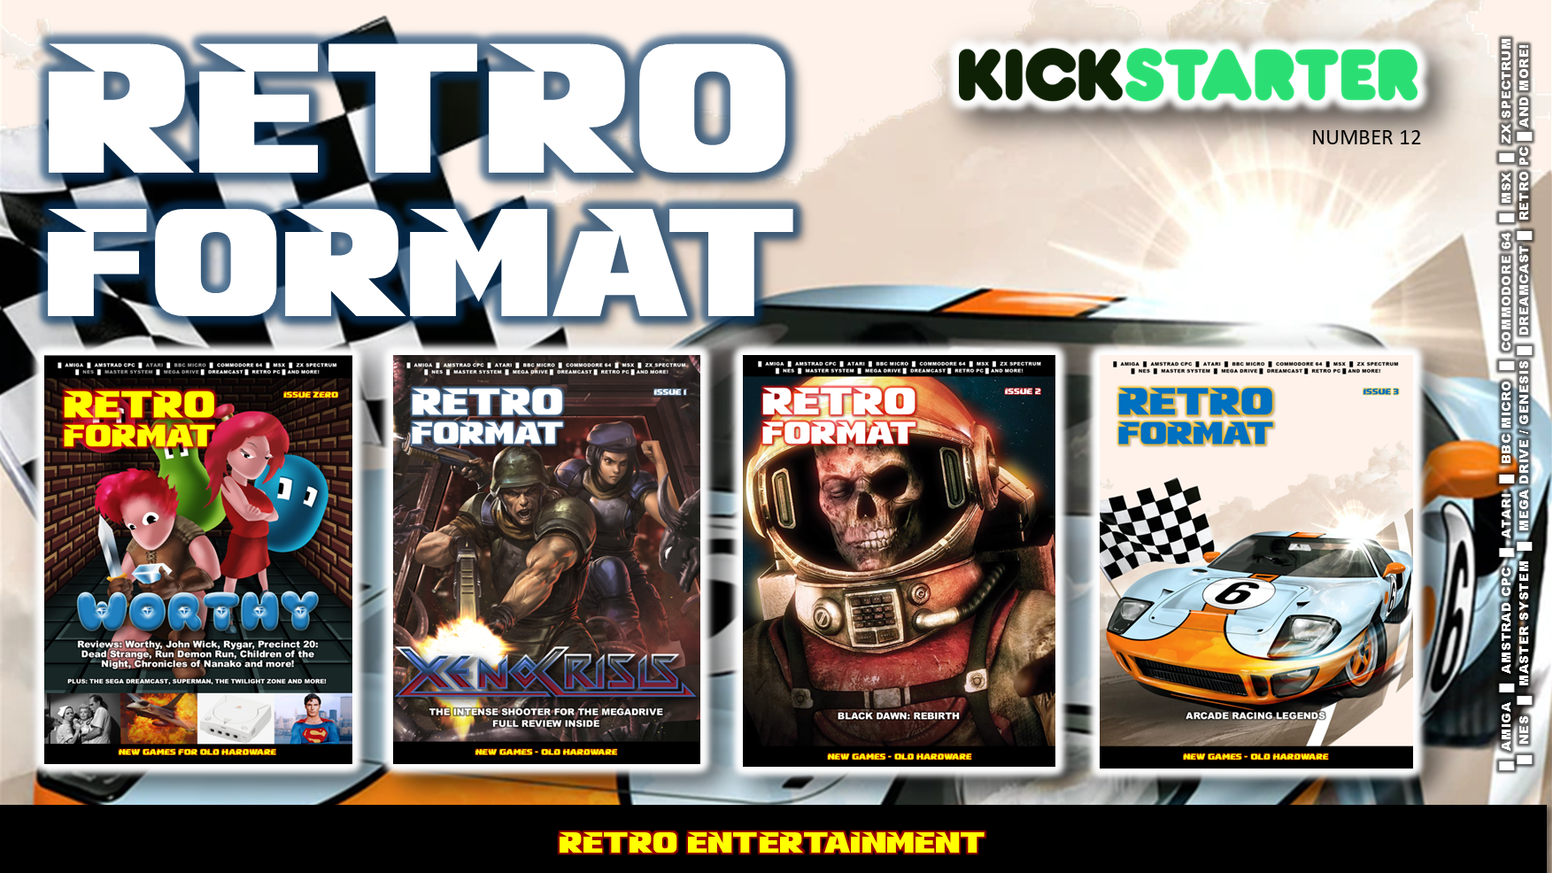 Retro Format is a physical print magazine covering computers and game consoles from the 1970s to the early 2000s.